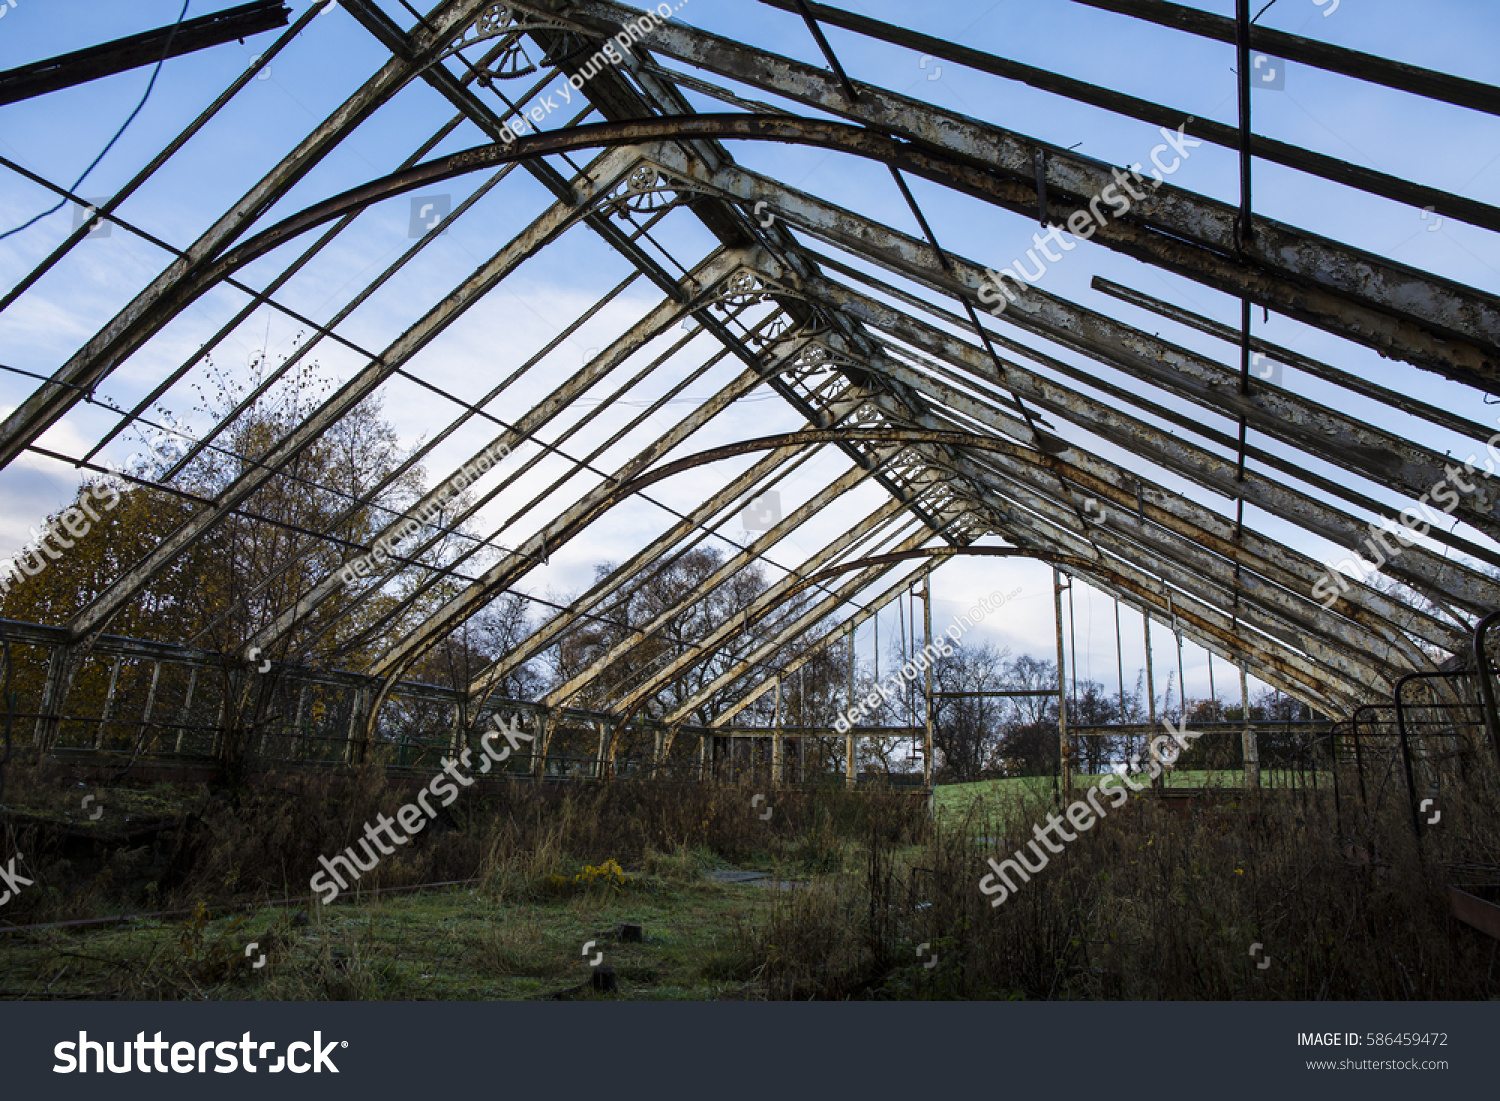 Winter Gardens Abandoned Hot House Glasgow Stock Photo (Edit ... on winter potted plants, winter shade plants, winter blooming plants, winter porch plants, winter container plants, winter hibiscus, winter yard plants, winter deck plants, winter perennial plants, winter interest plants, winter flowering plants, winter fragrant plants, winter house landscaping, winter planter plants, winter house art, winter hardy plants, winter outdoor plants, winter house cookies, great winter plants, winter patio plants,